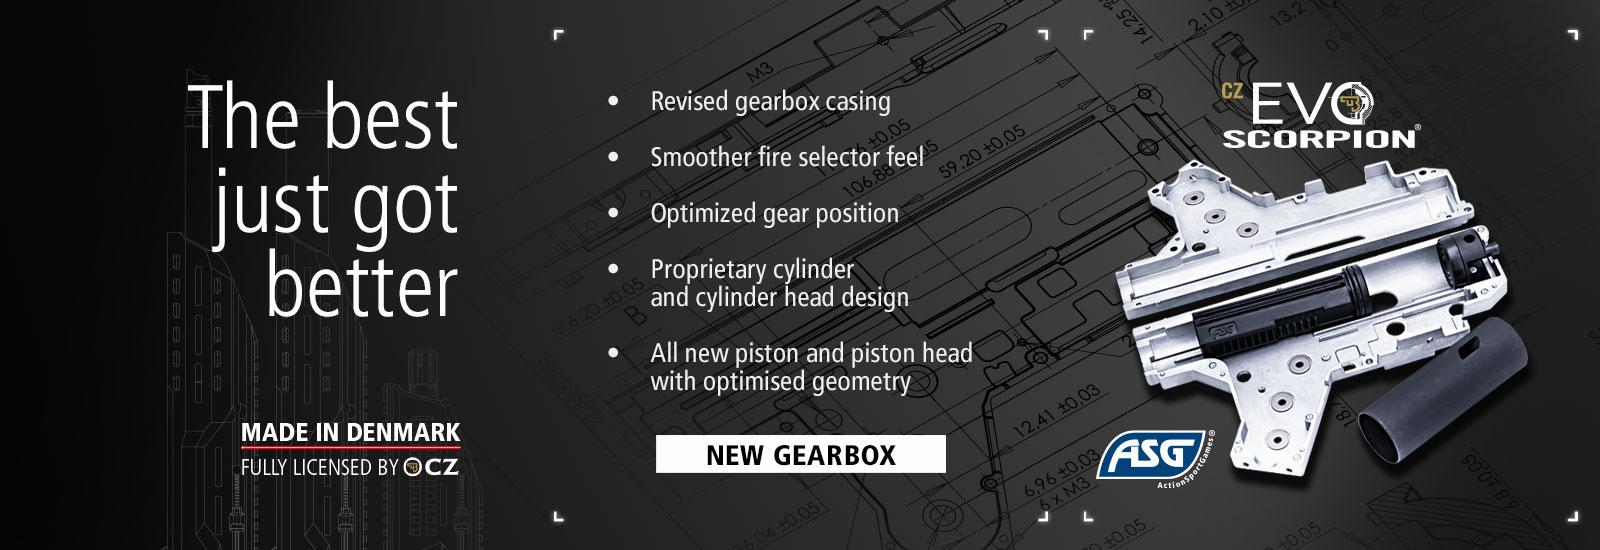 /Files/Images/MediaPackage/2018/2018 EVO gearbox upgrade/2018_EVO-gearbox-ASG-Banner_2.jpg